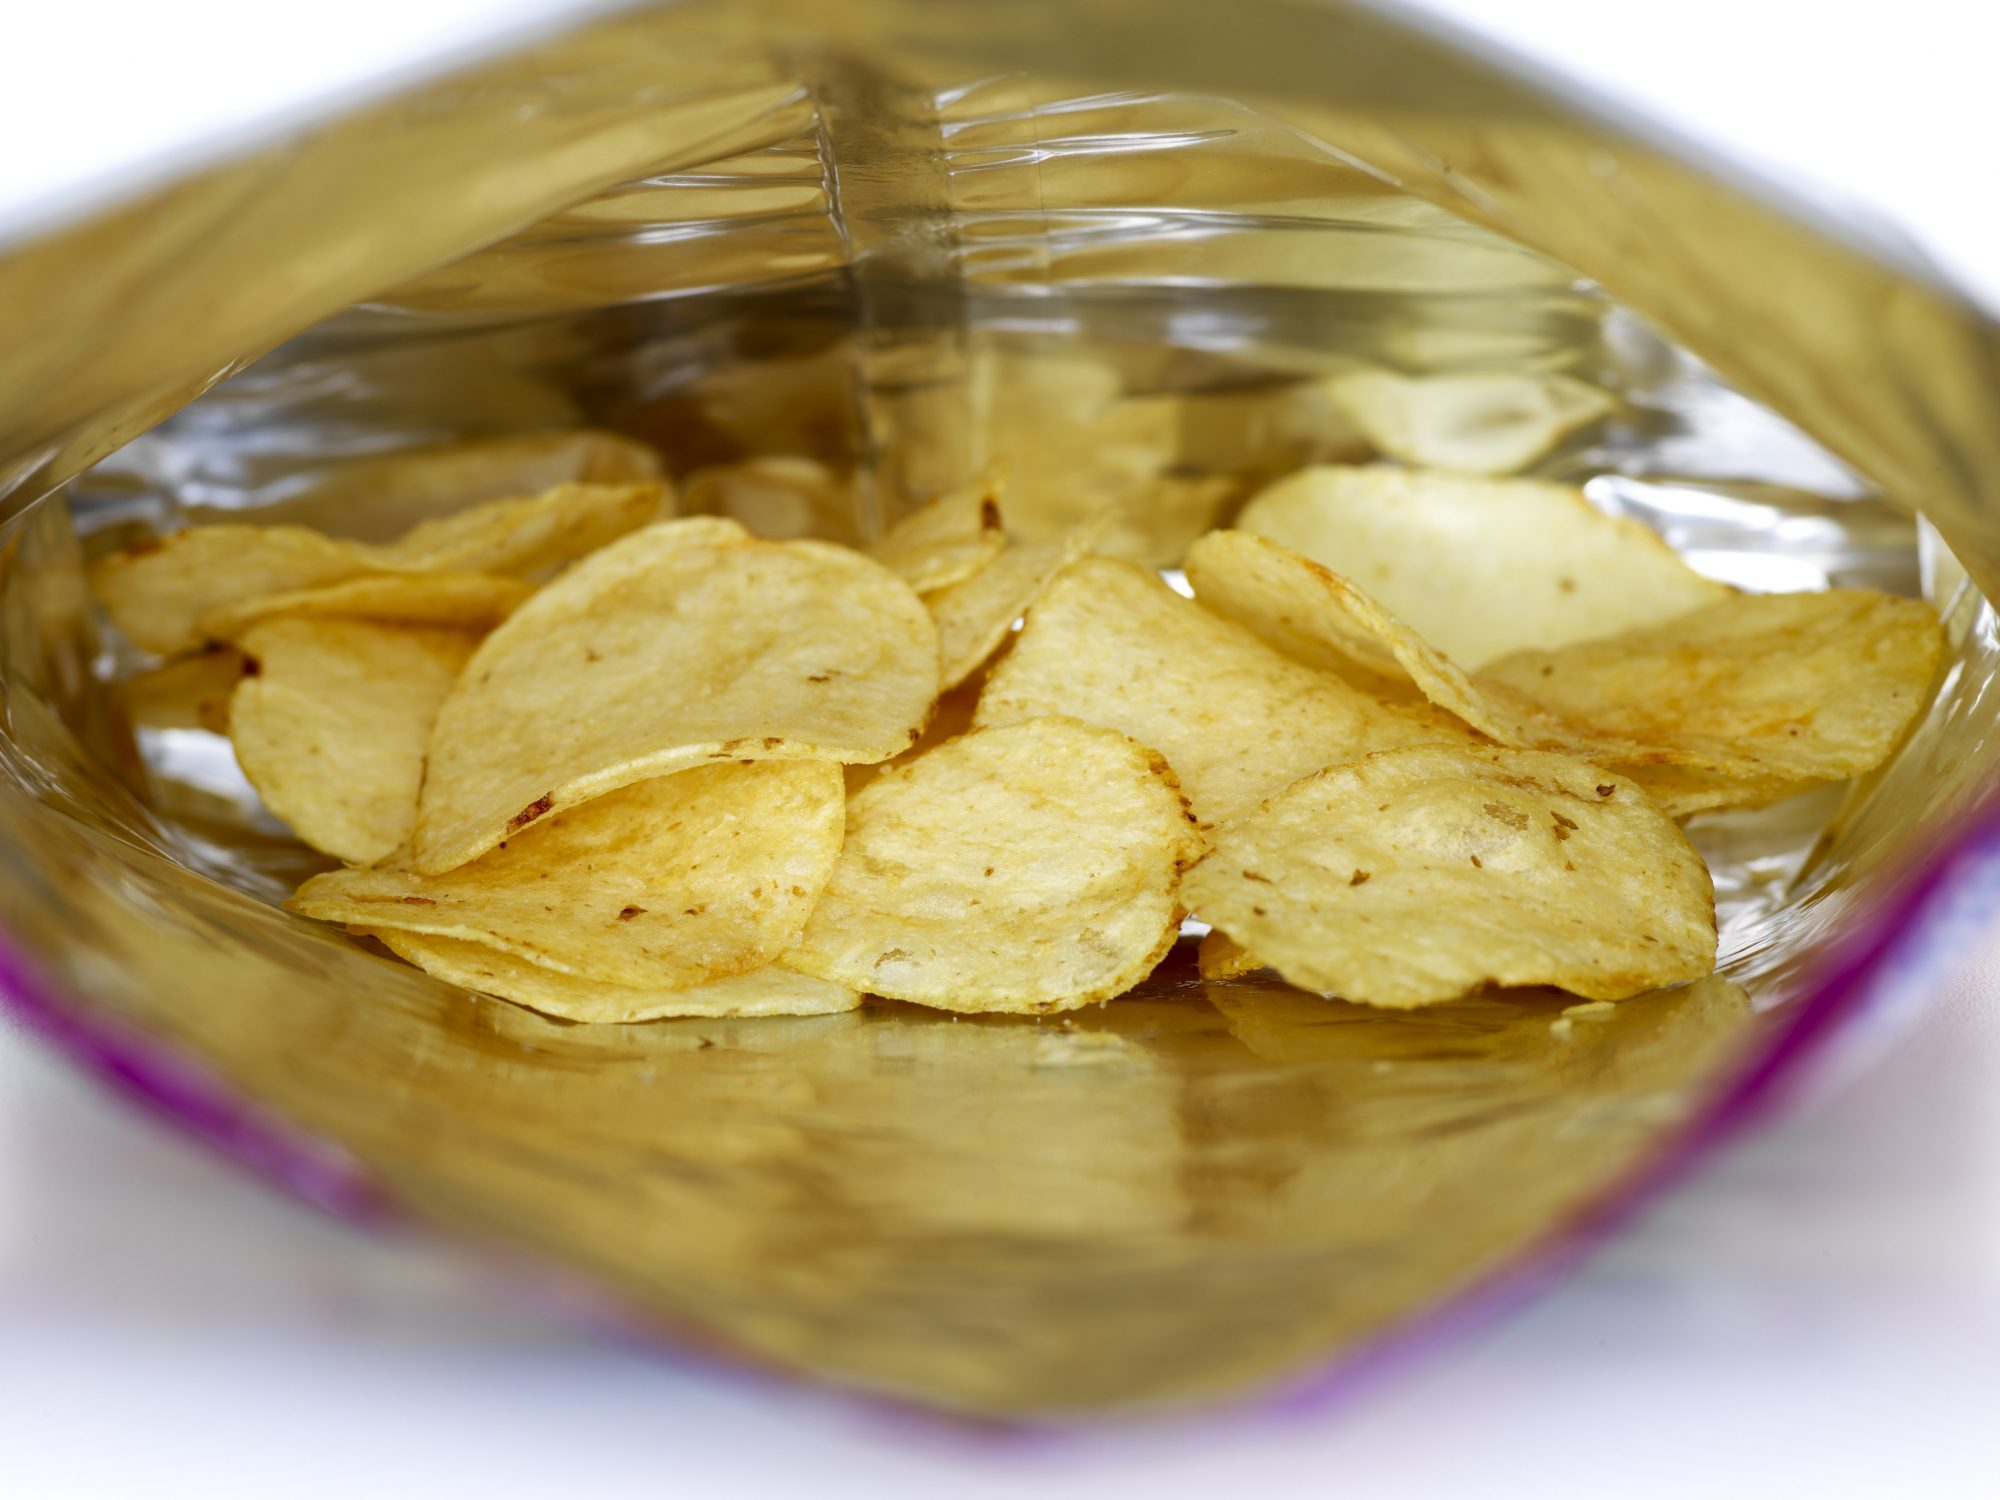 Wise Foods Gets Sued for Leaving Potato Chip Bags Mostly Empty